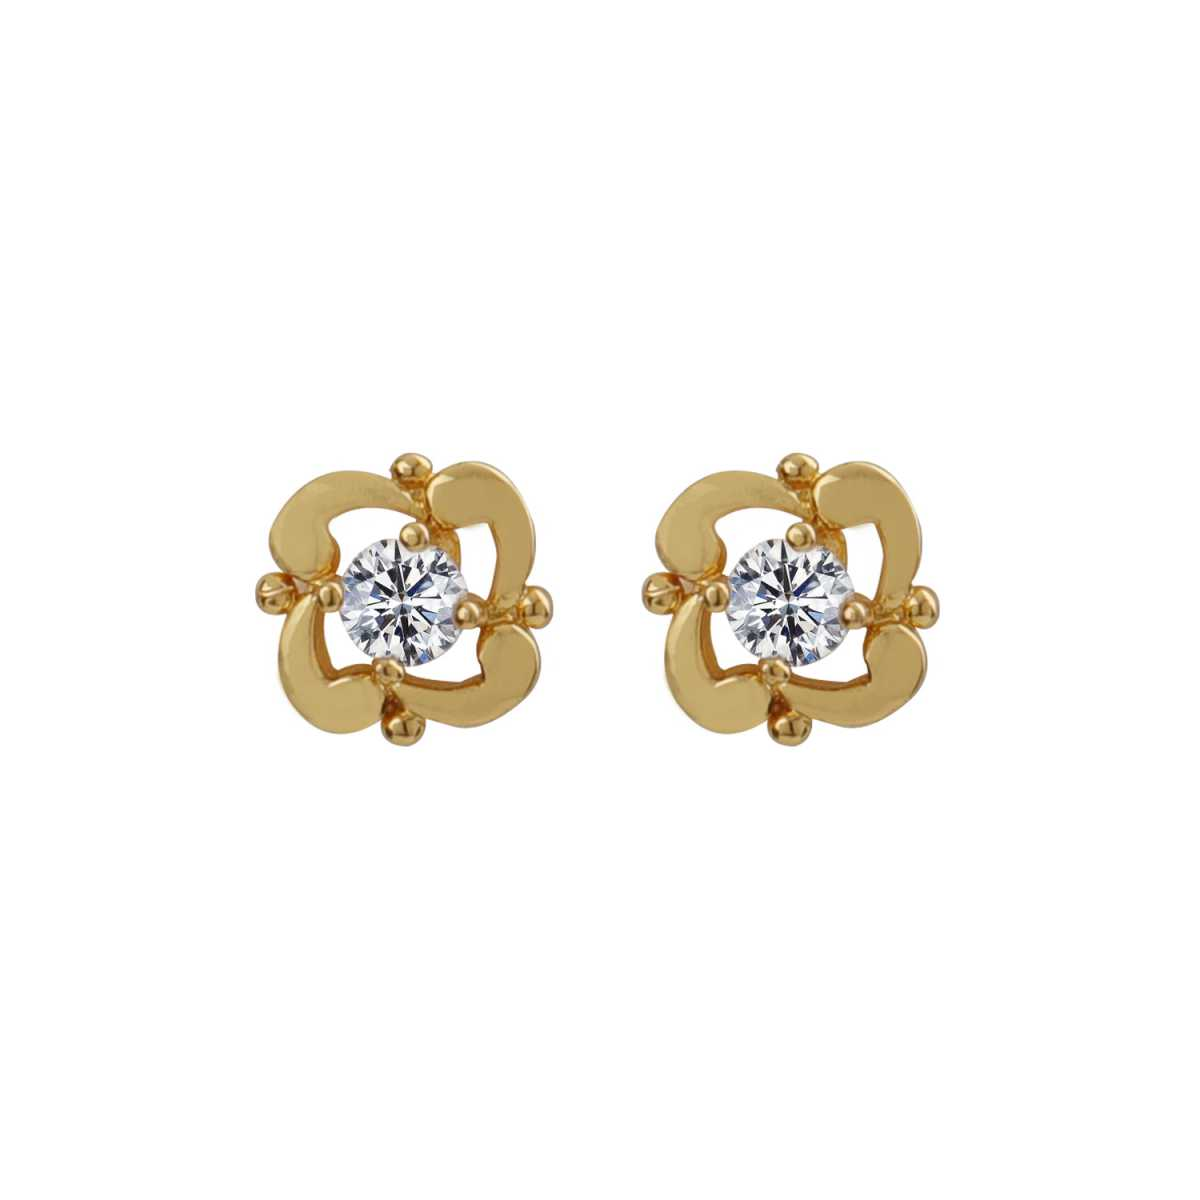 Silver Shine Charming Gold Superb Polished Stud Earring With Diamond For Girl And Women